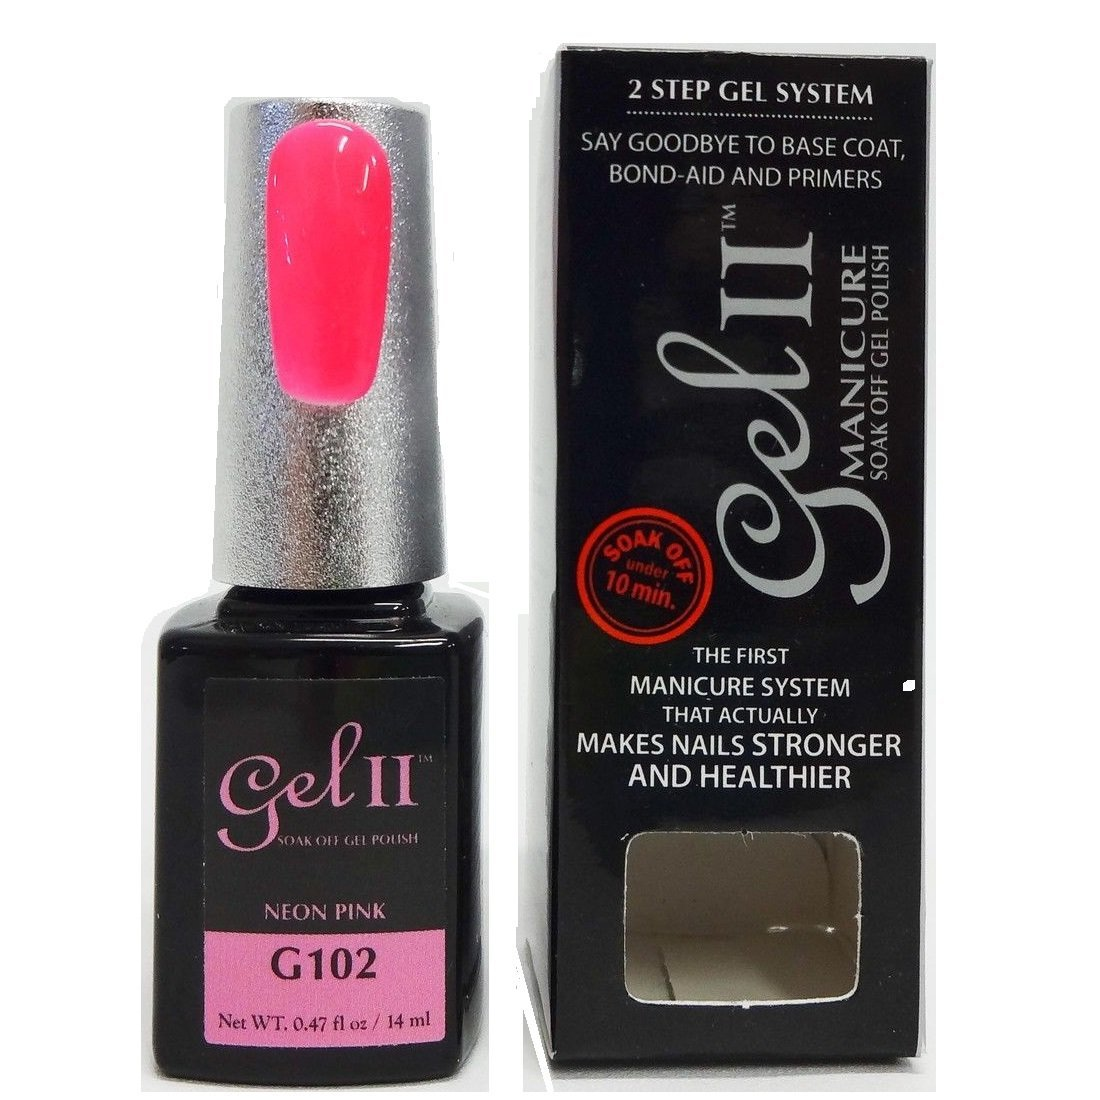 Off gel polish, neon pink, 0.47 ounce : beauty